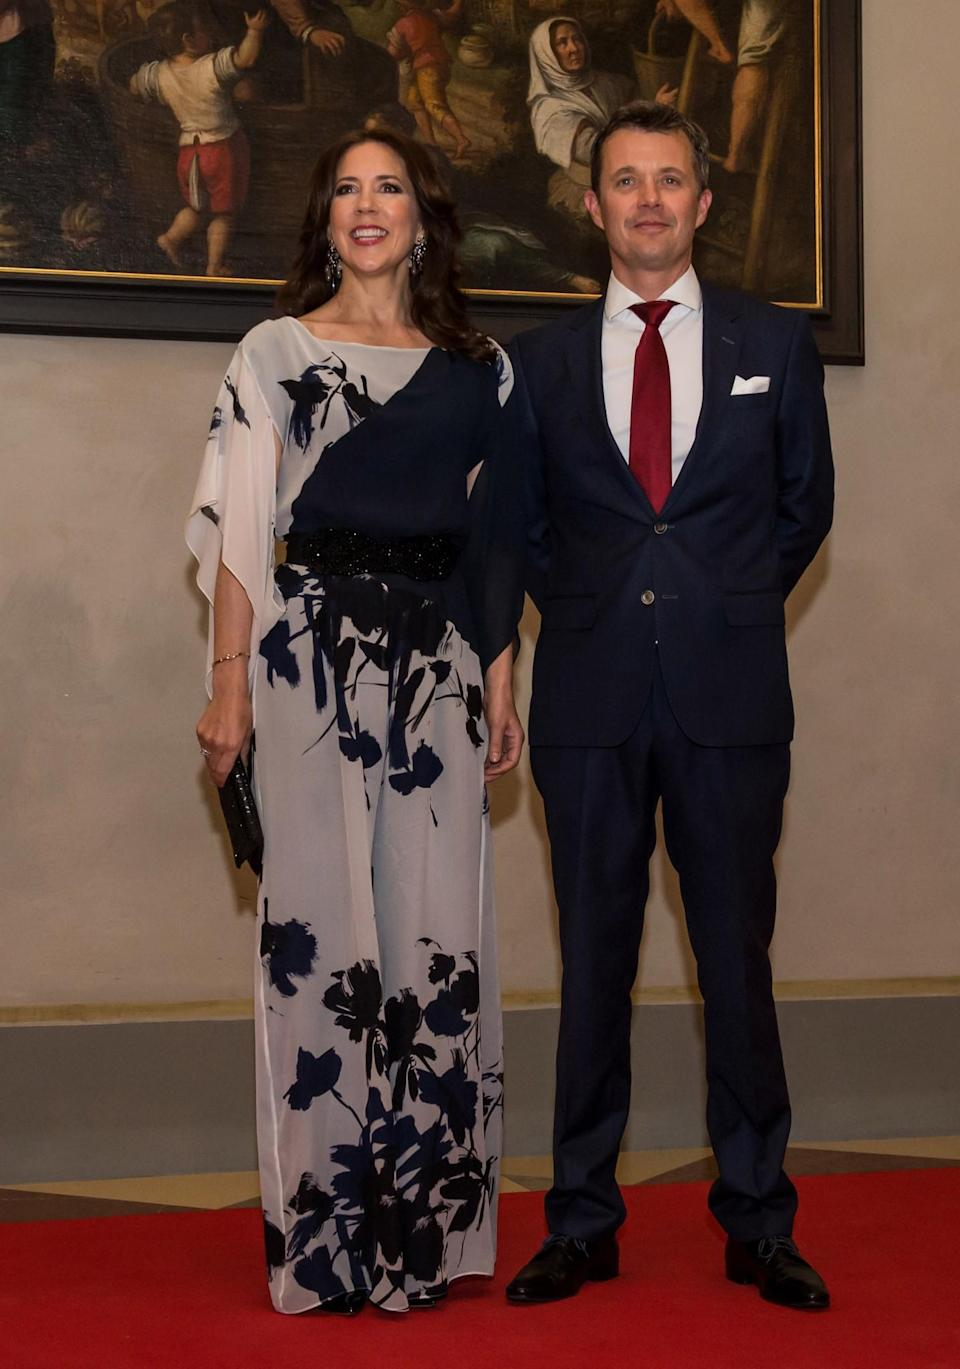 <p>Mary regularly makes it on the best dressed royals list for her somewhat edgy yet still appropriate sartorial choices. Her fairytale-like gowns are always a sight to behold. As for daywear, she favours tailored skirt suits that are true workwear goals. <i>[Photo: Getty]</i> </p>